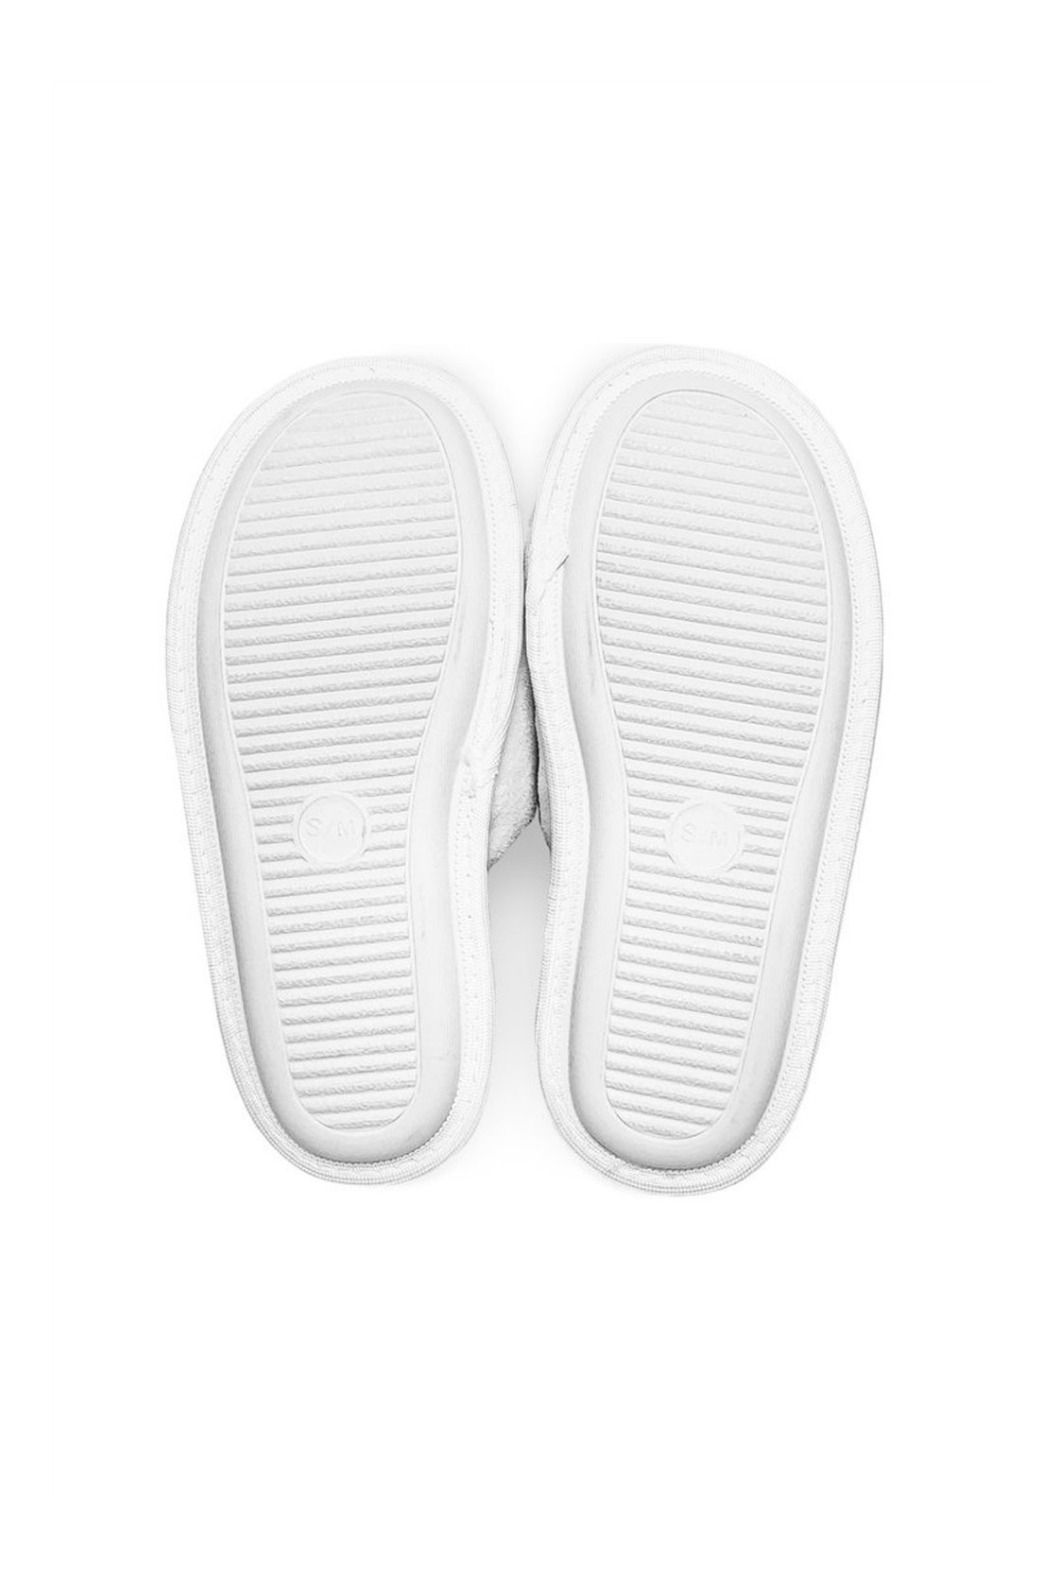 Los Angeles Trading Co.  Favorite Daughter Slippers - Front Full Image